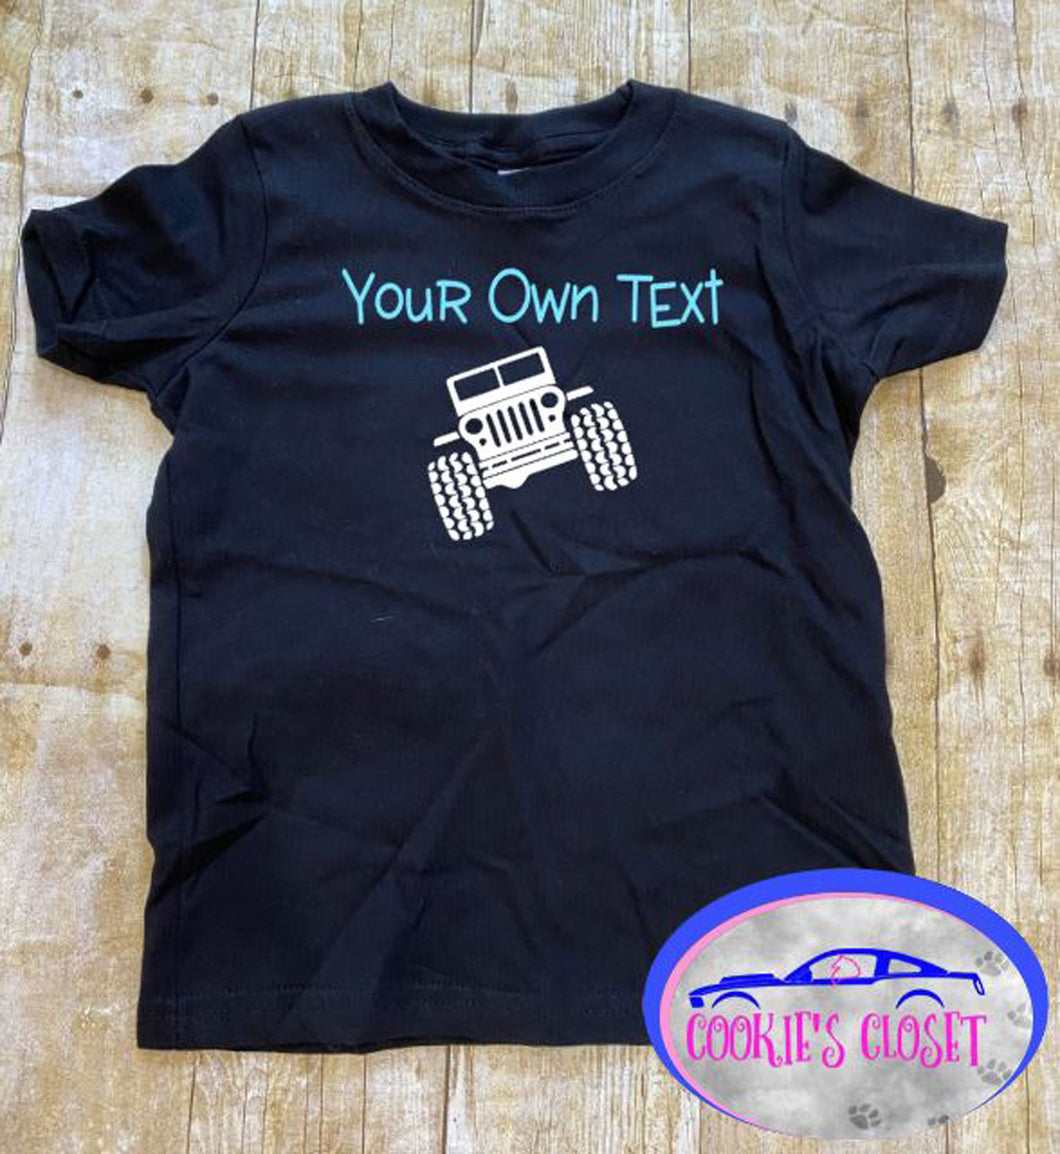 Your Own Text Wrangler Toddler Short or Long Sleeve T-Shirt